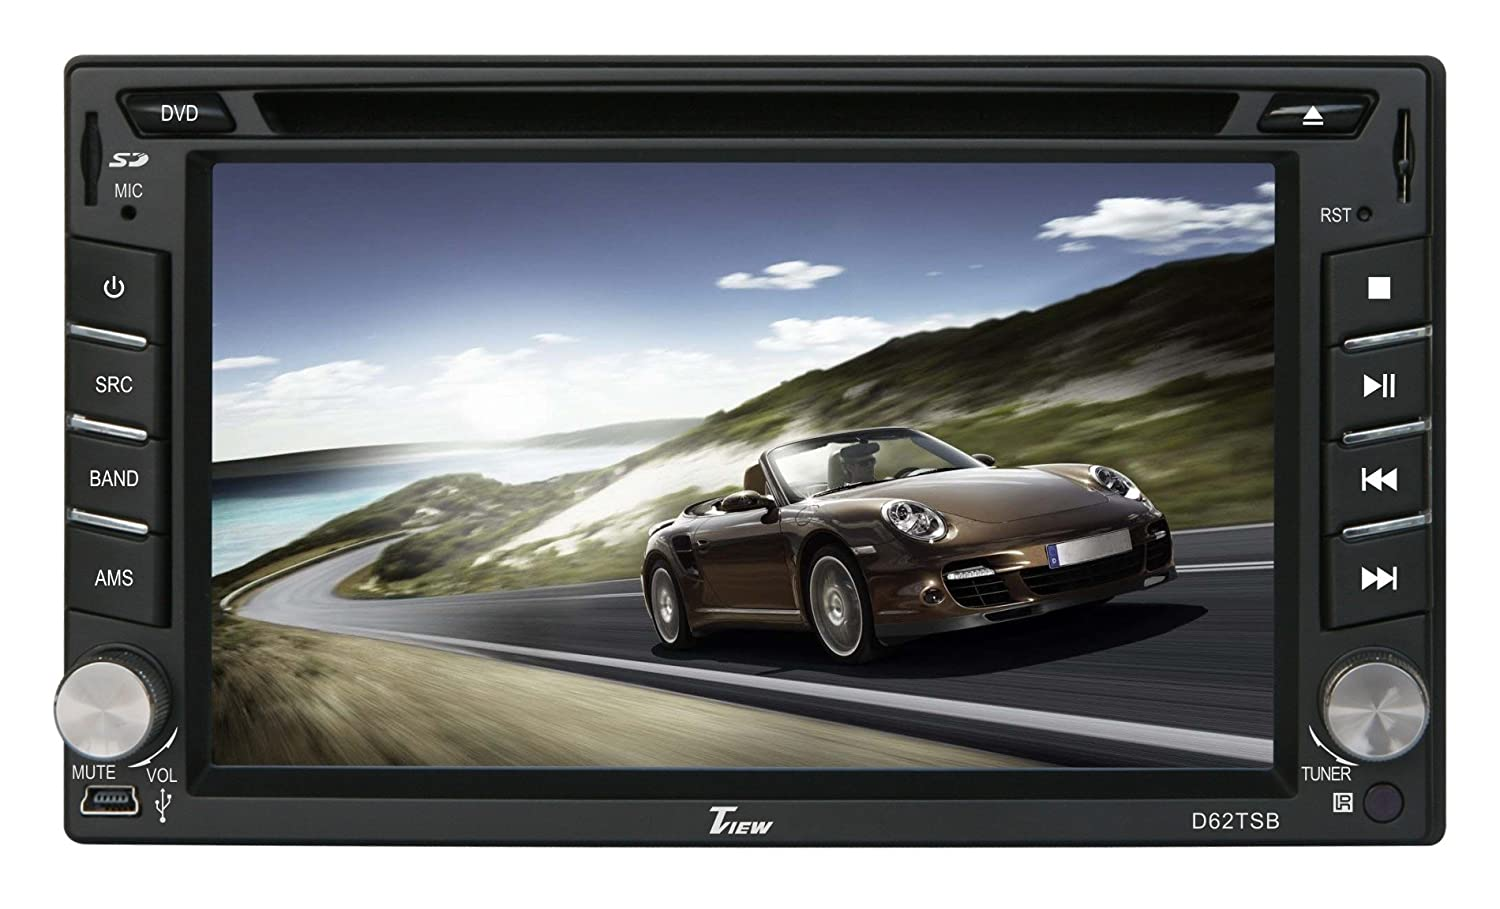 71N8 eVkMJL._SL1500_ amazon com tview d62tsb 6 2 inch double din touch screen with tview d75tsb wiring harness at edmiracle.co